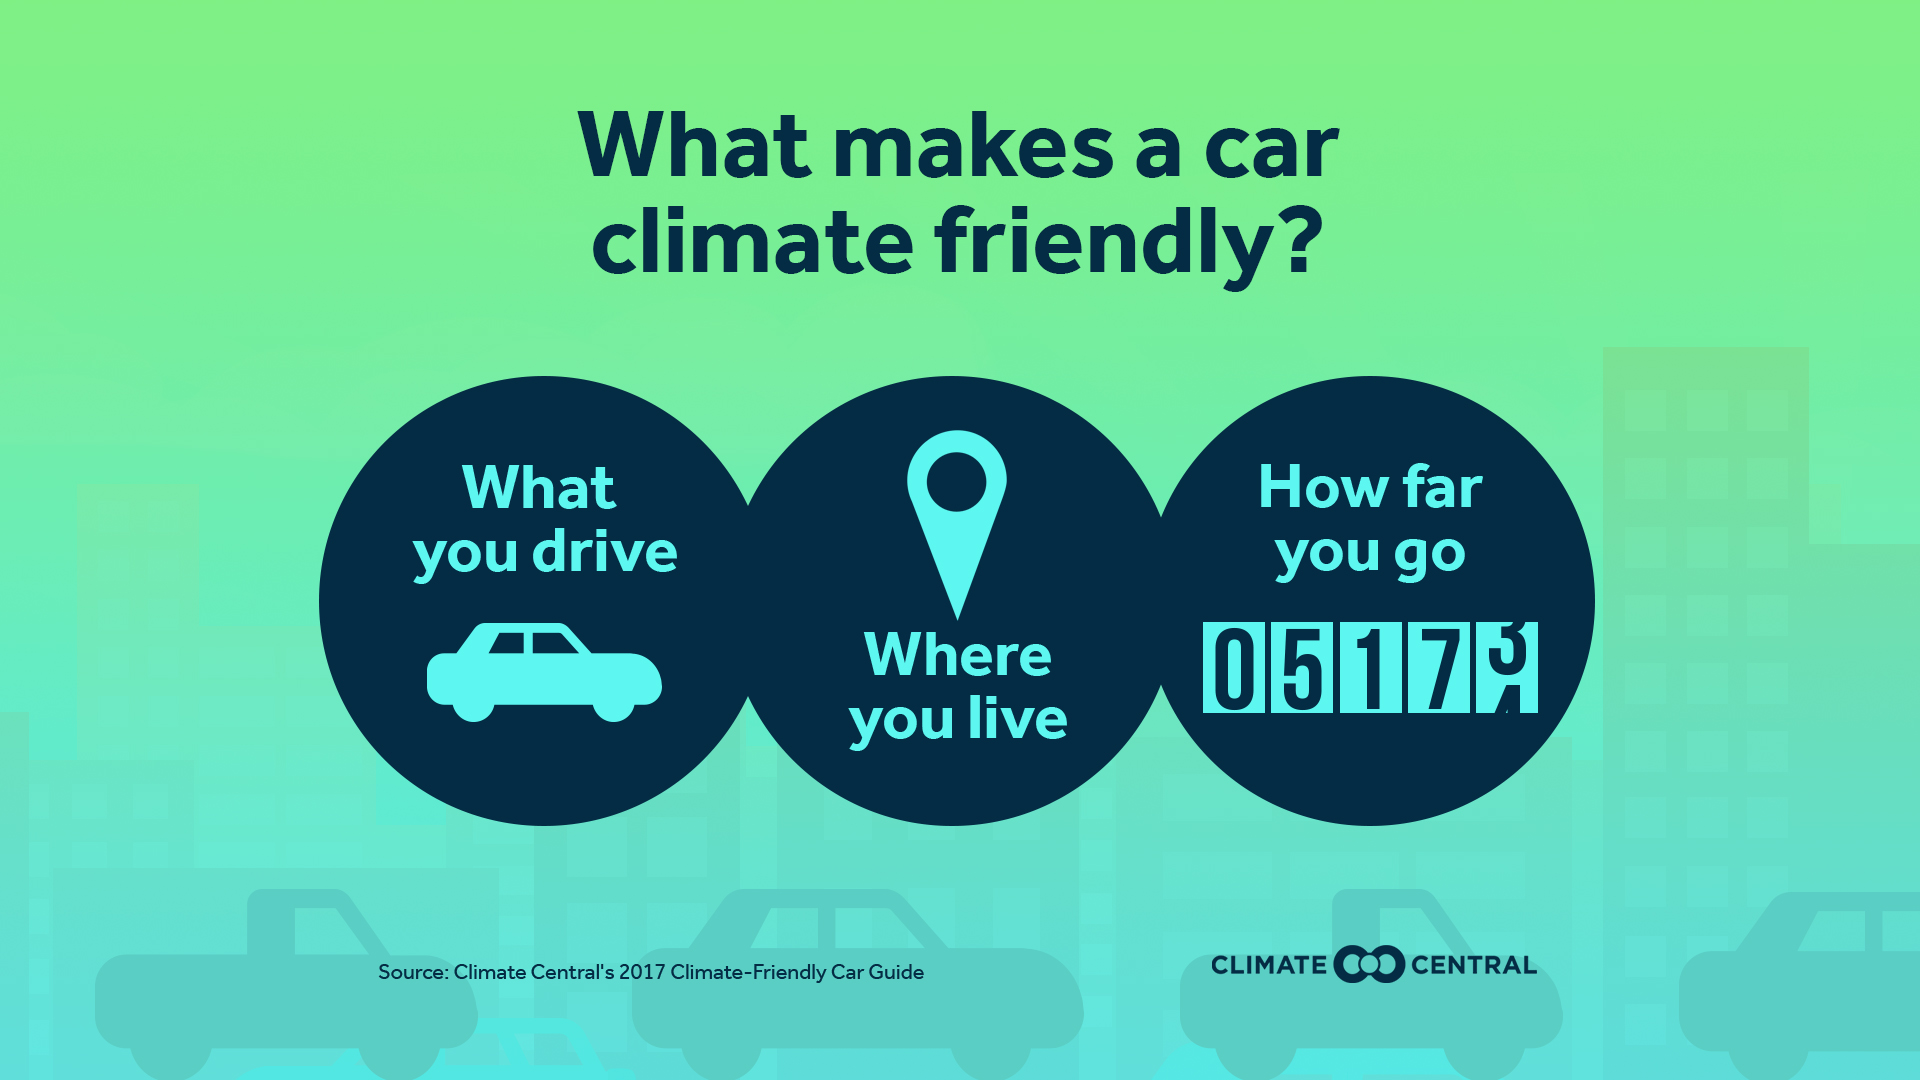 What Makes a Car Climate Friendly?